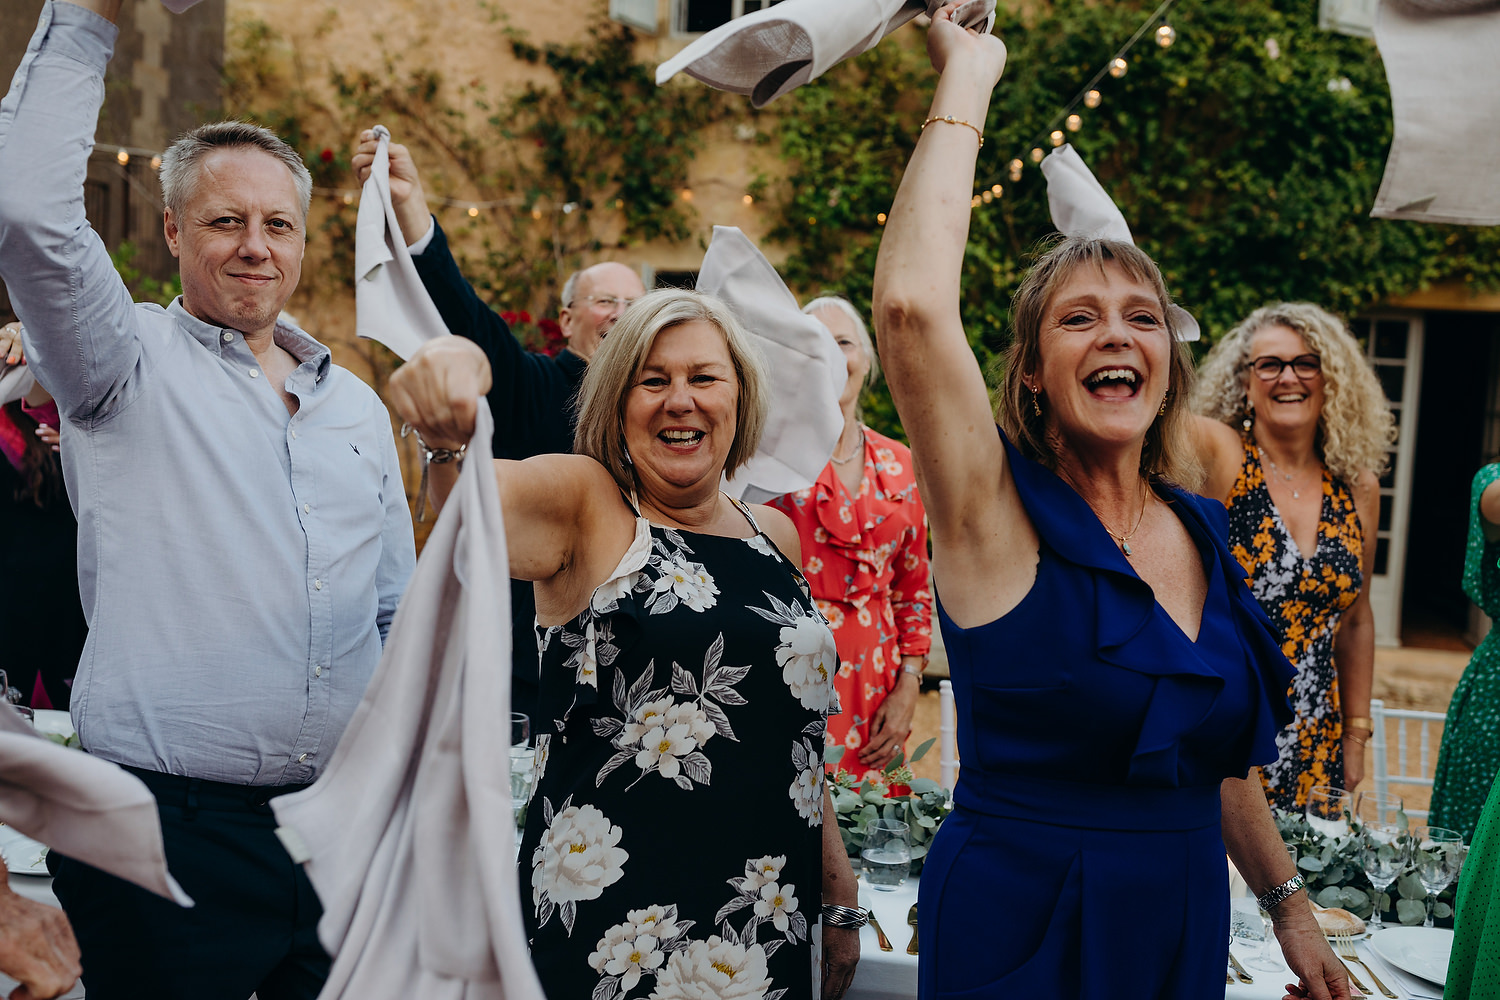 guests wave their napkins